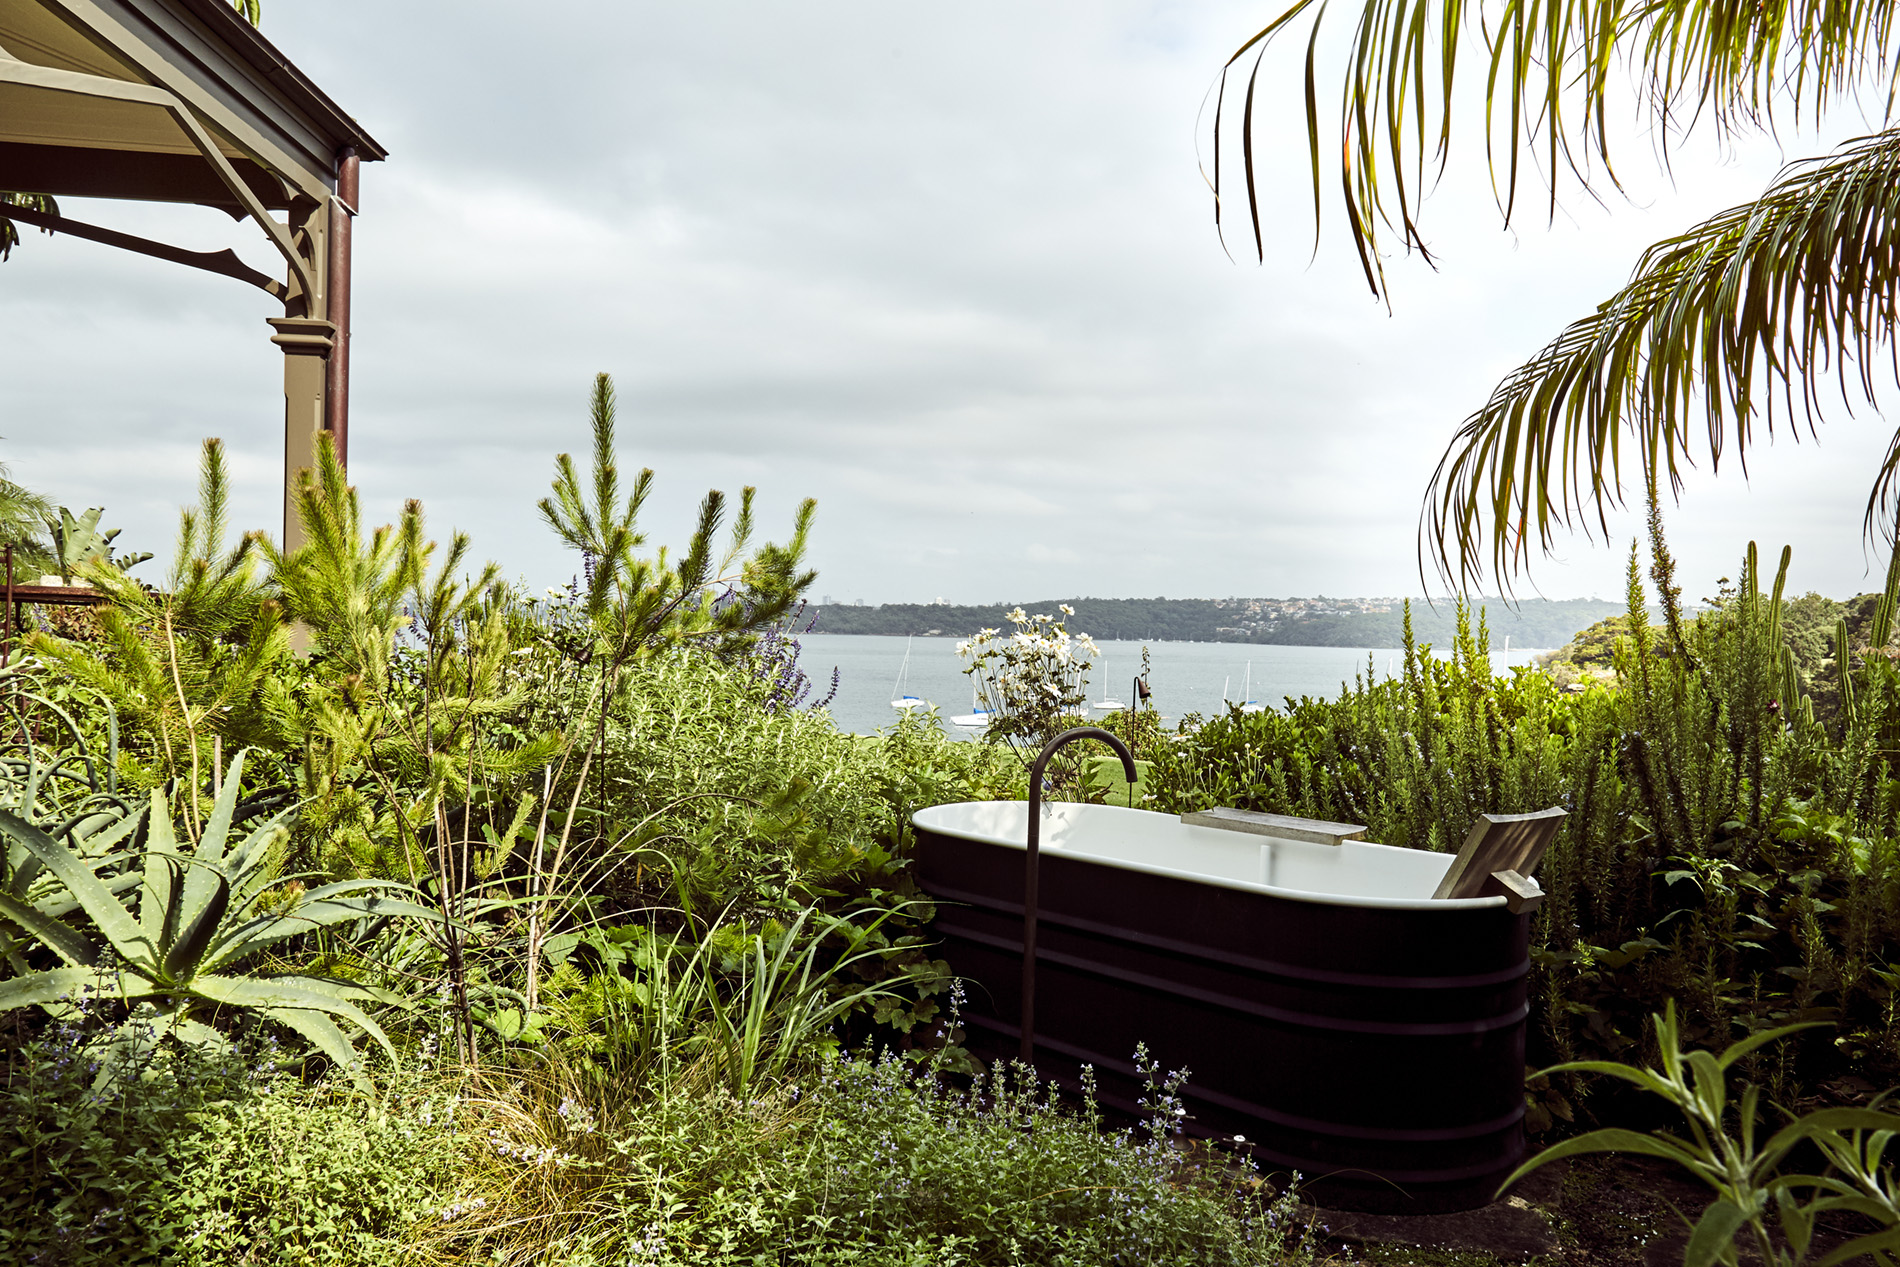 A photograph of a bathtub sitting in a garden, surrounded by plants and grasses. The ocean can be seen beyond the garden and the edge of a house sits in the left of the image.